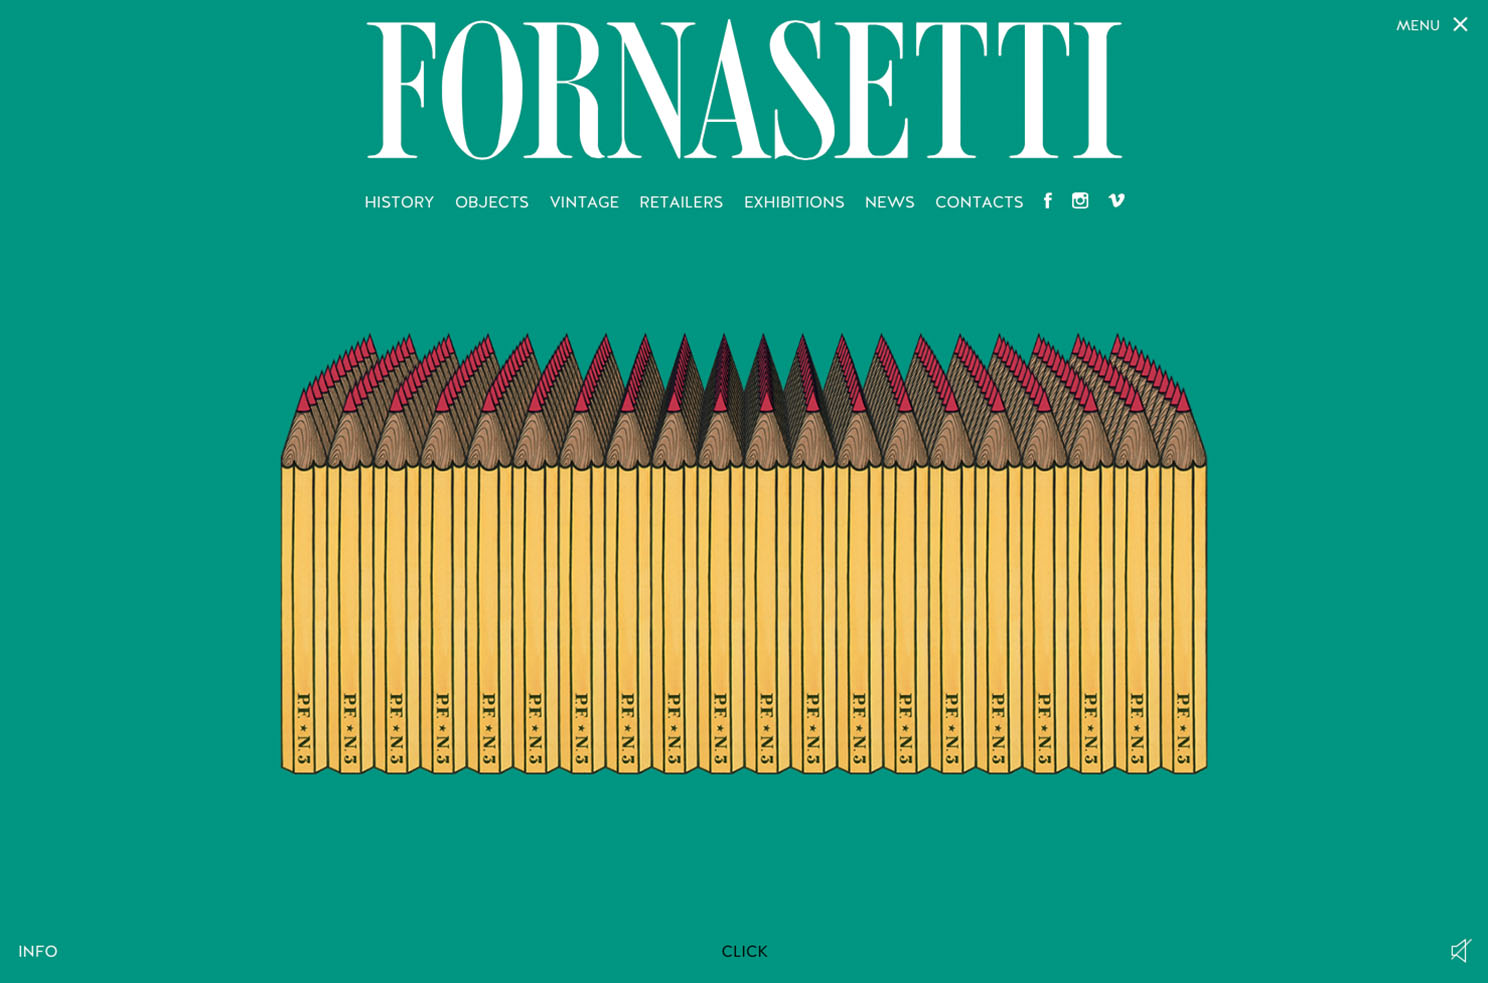 Fornasetti interior design website blog Marvellous agency